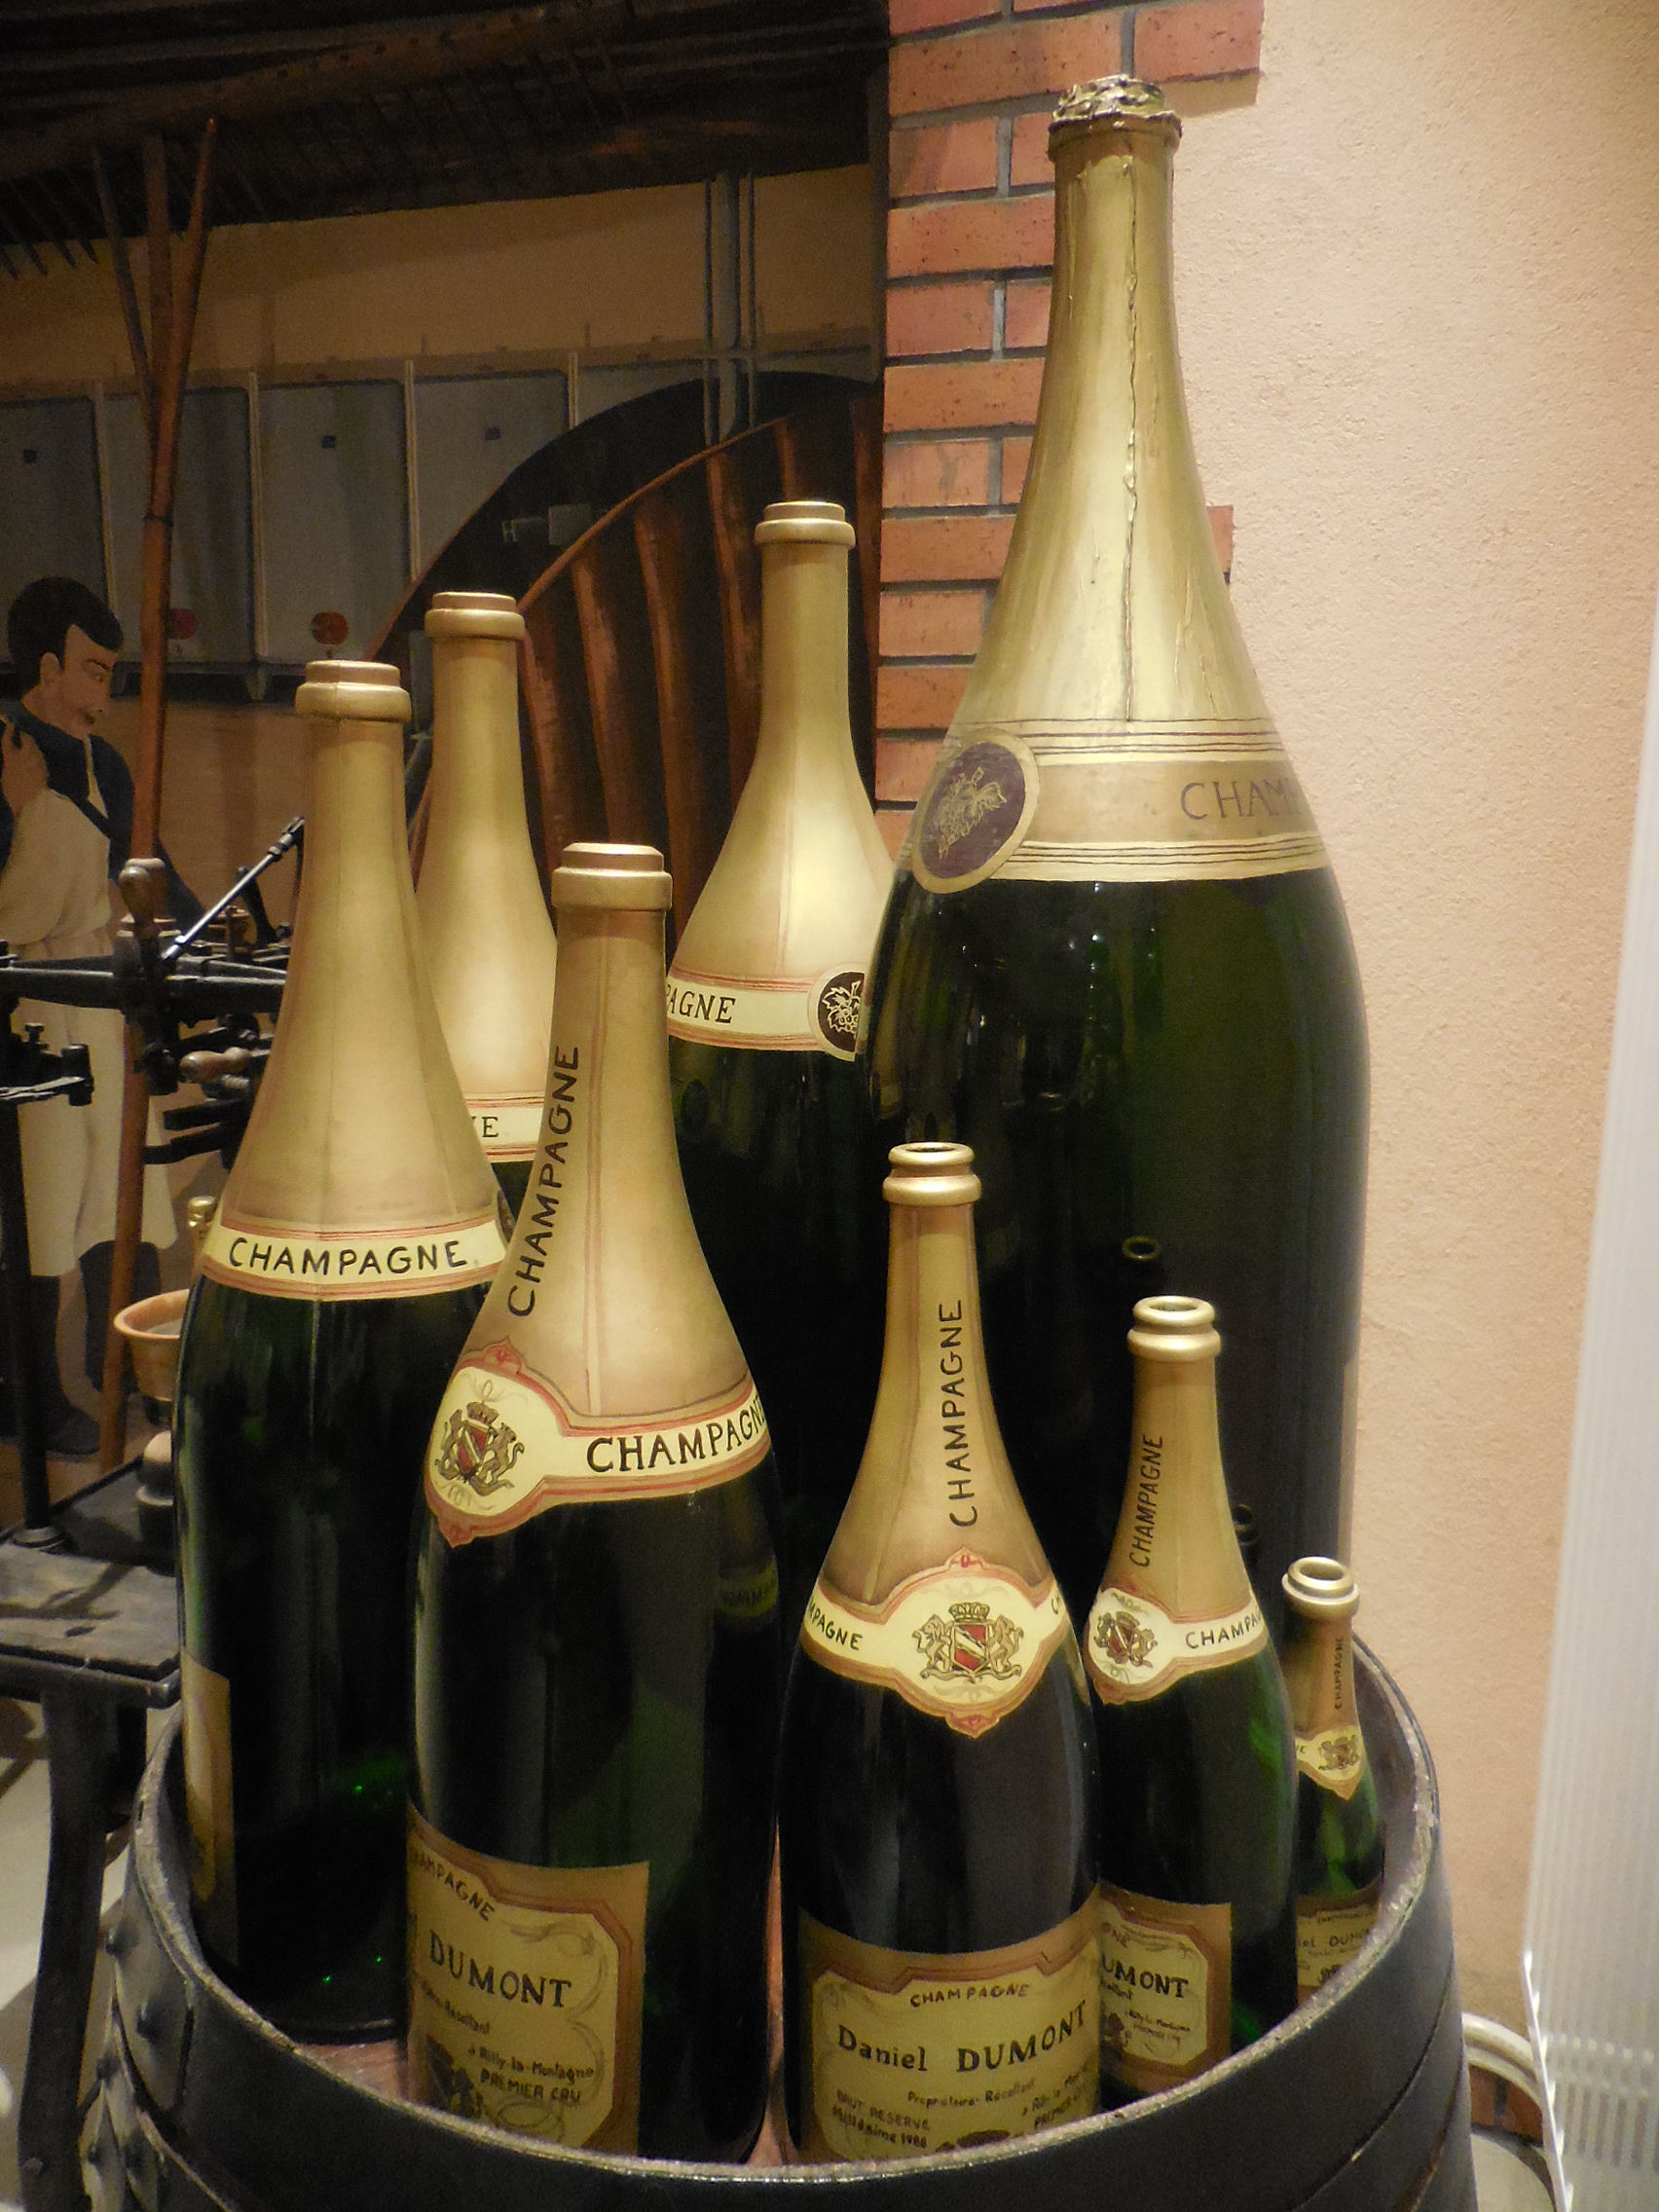 Bottle of champagne, tasting, small local producer, visit of a cellar, producteur local de champagne